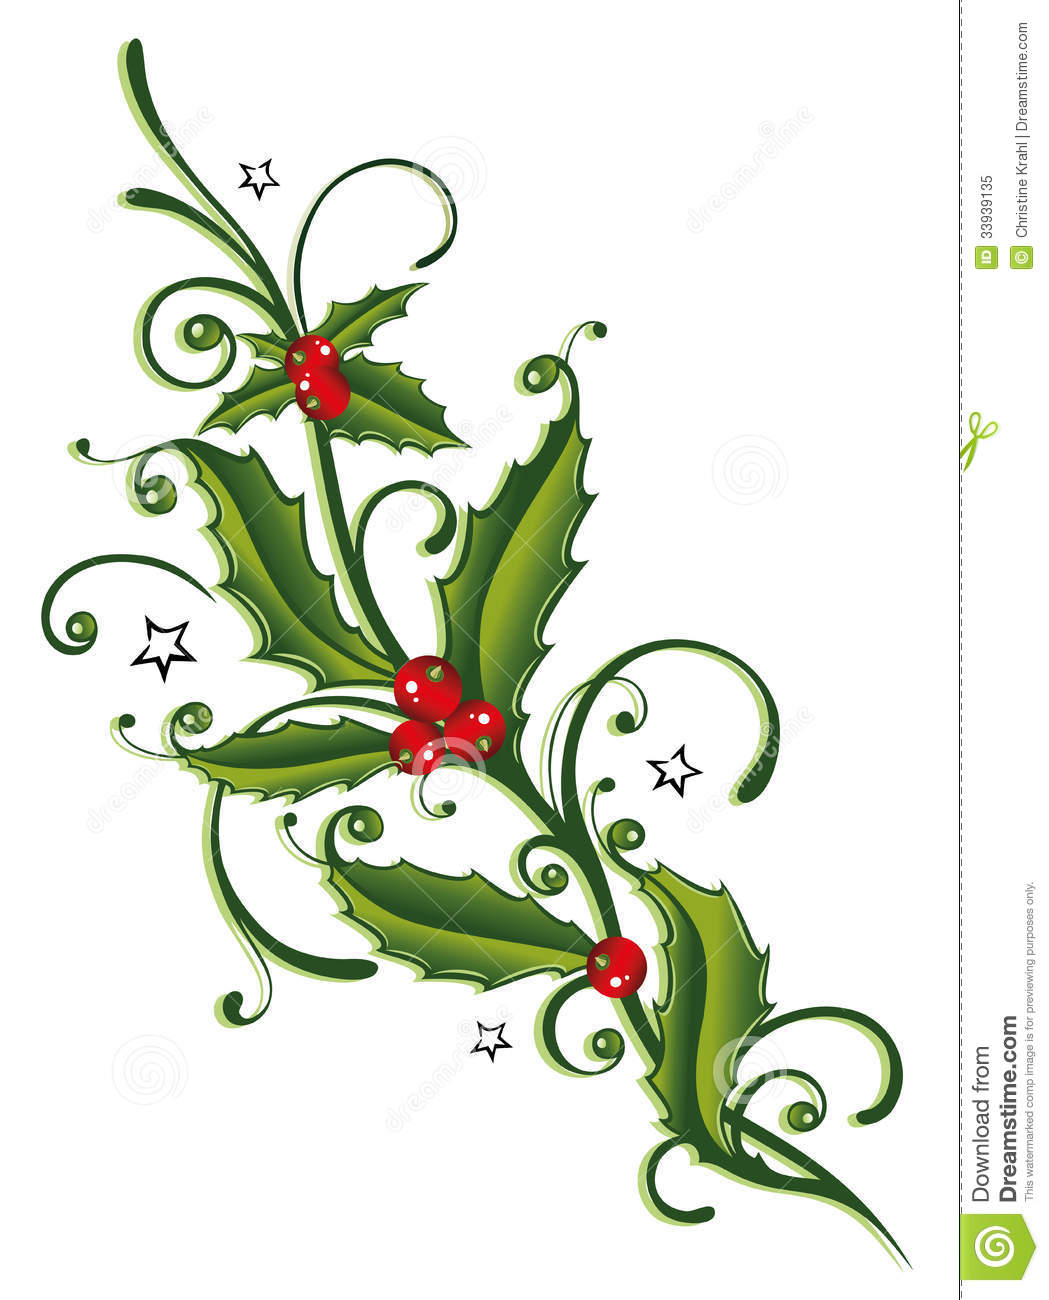 250 Holly Leaves free clipart.